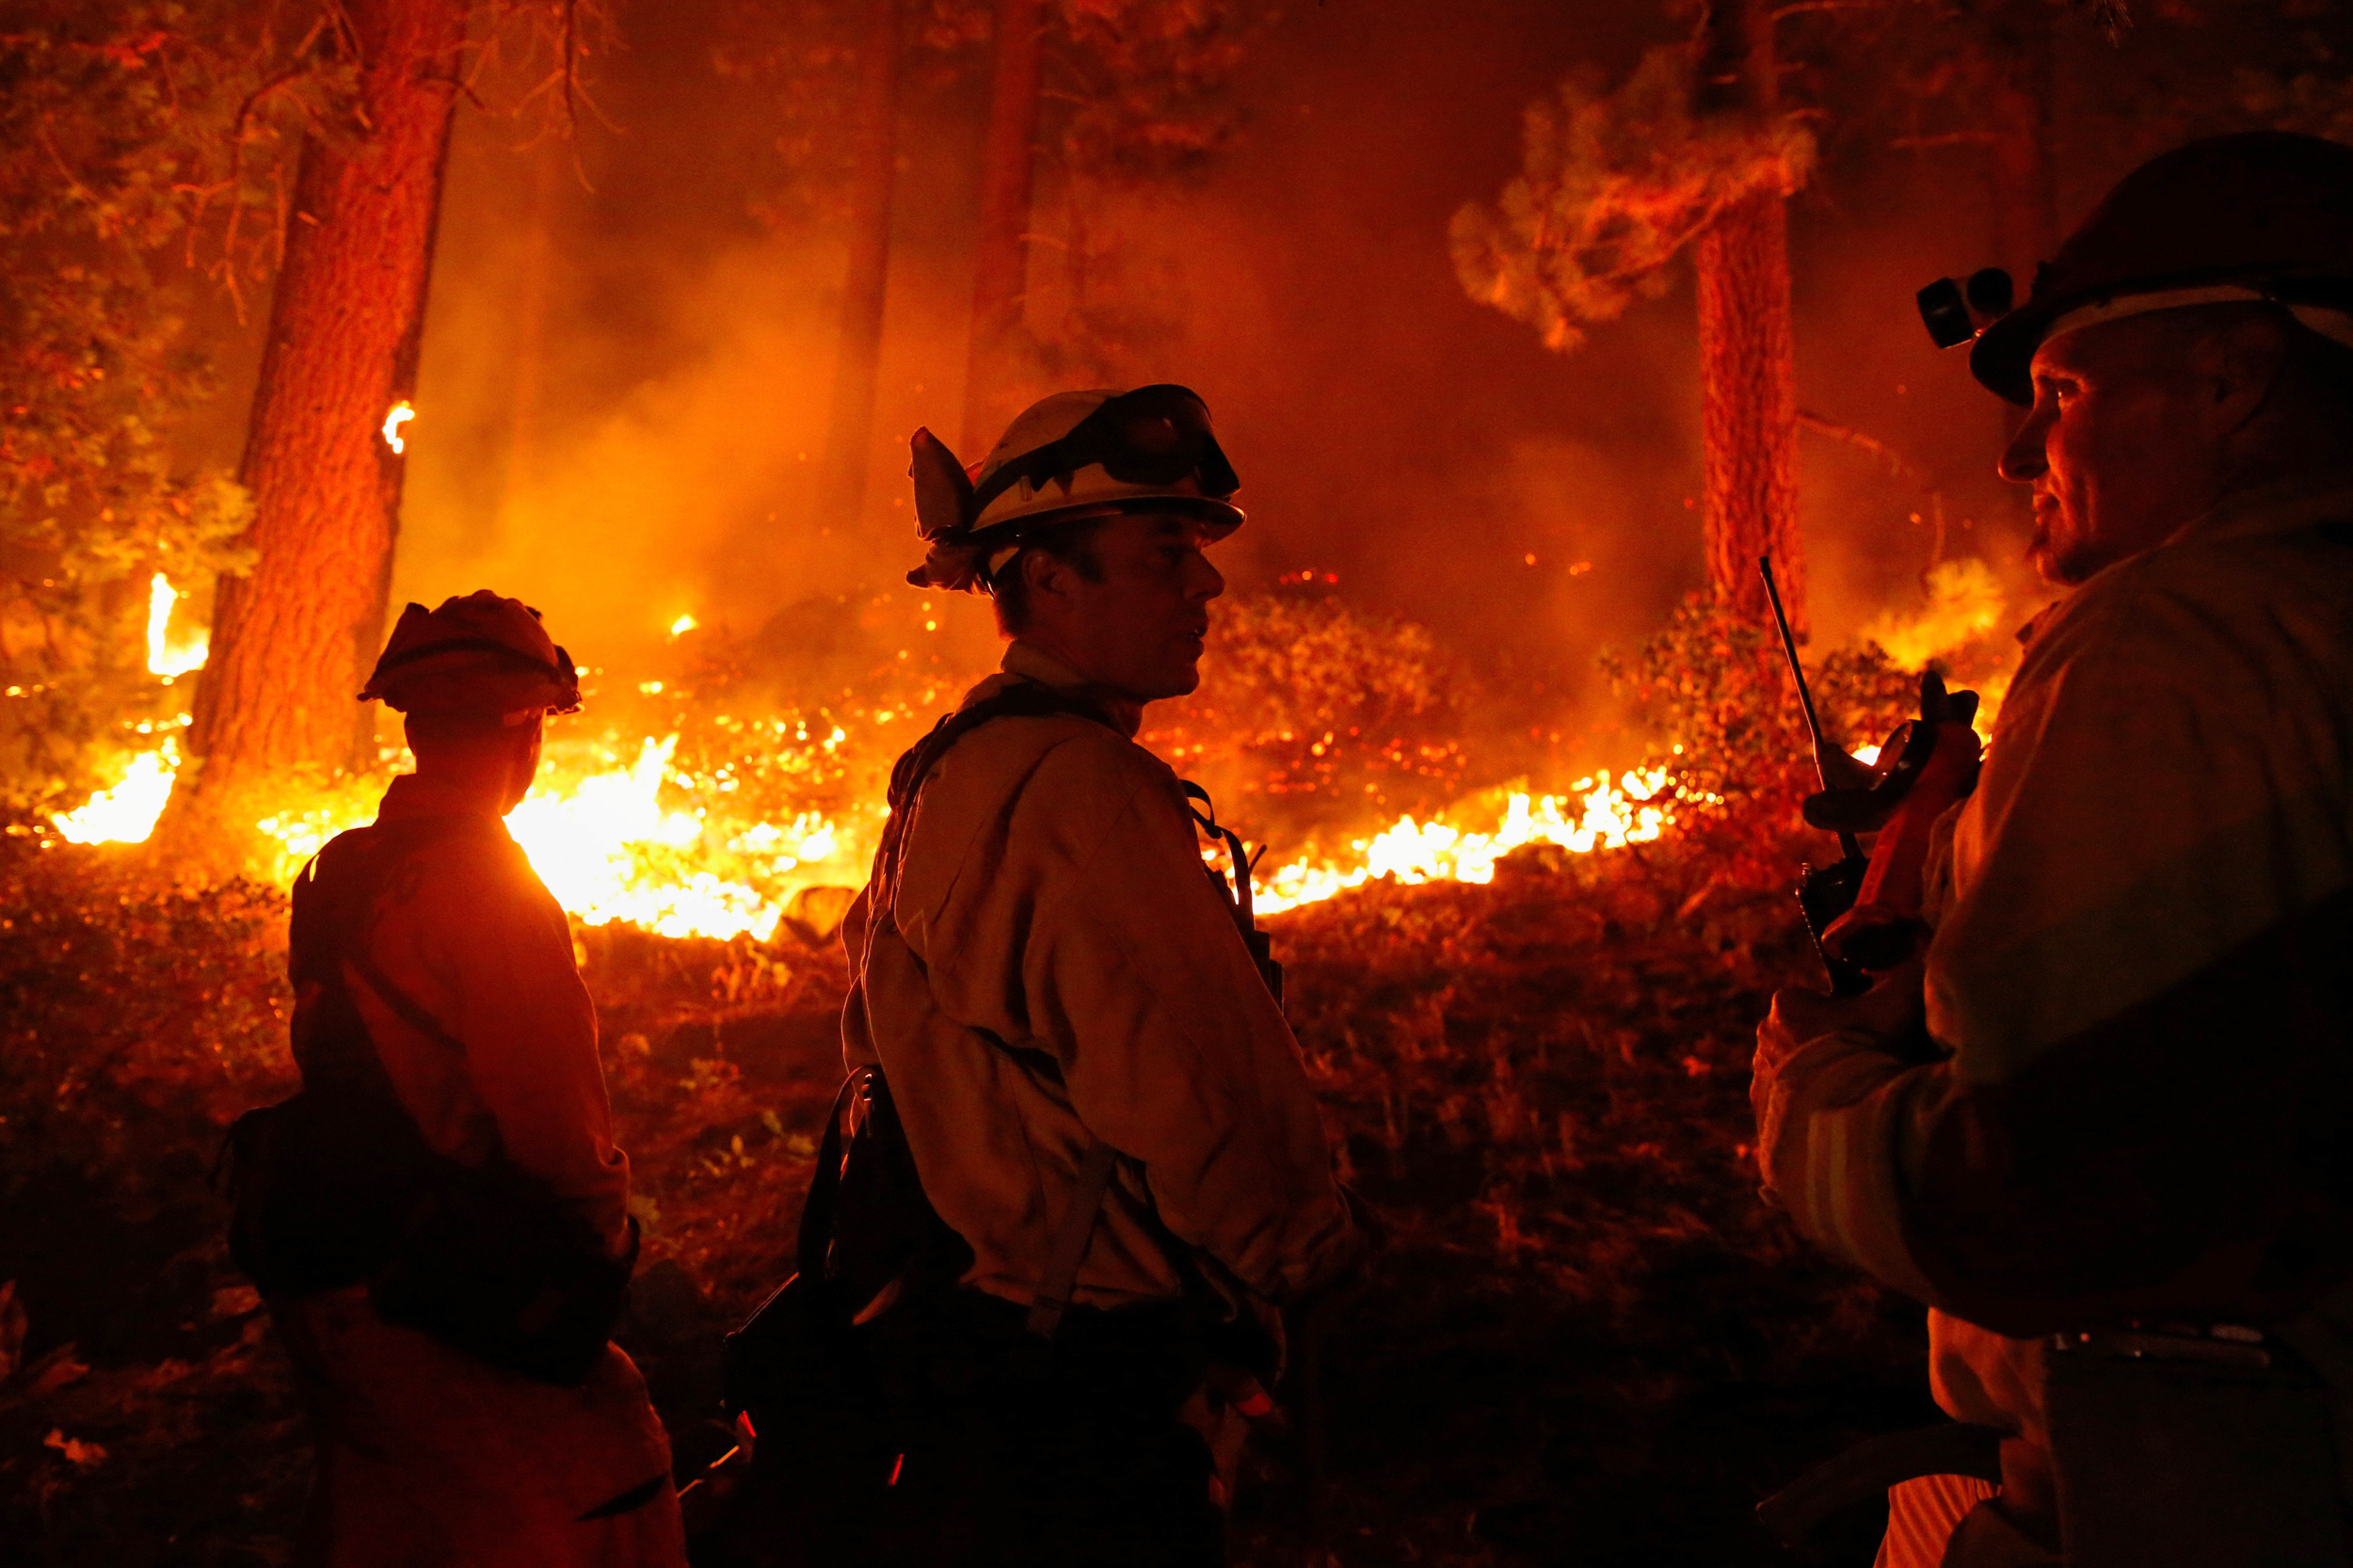 'All we can do': Firefighters attempt to merge California wildfires in effort to control one